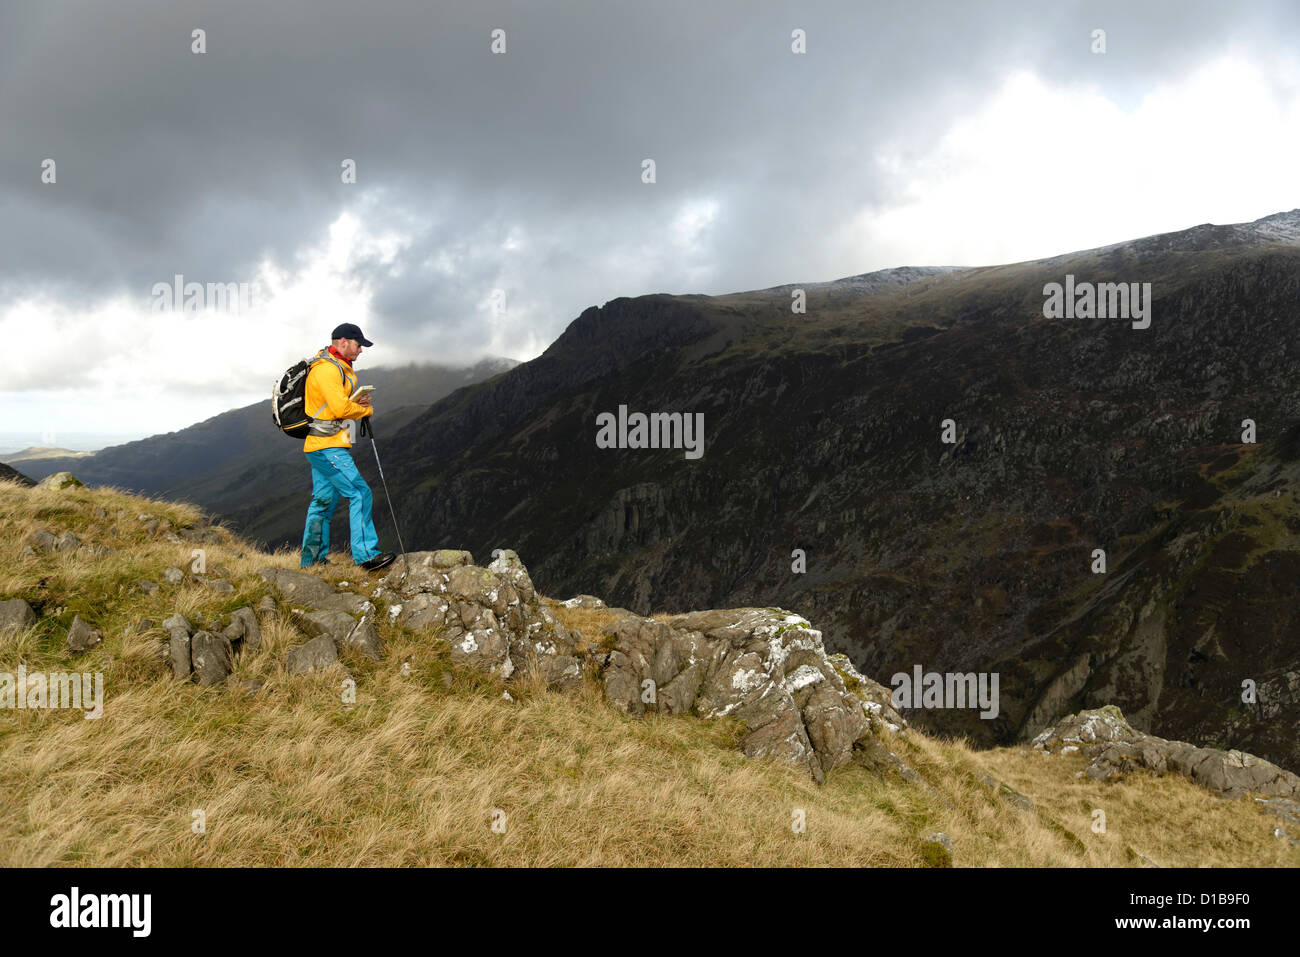 A hillwalker in Snowdonia - Stock Image